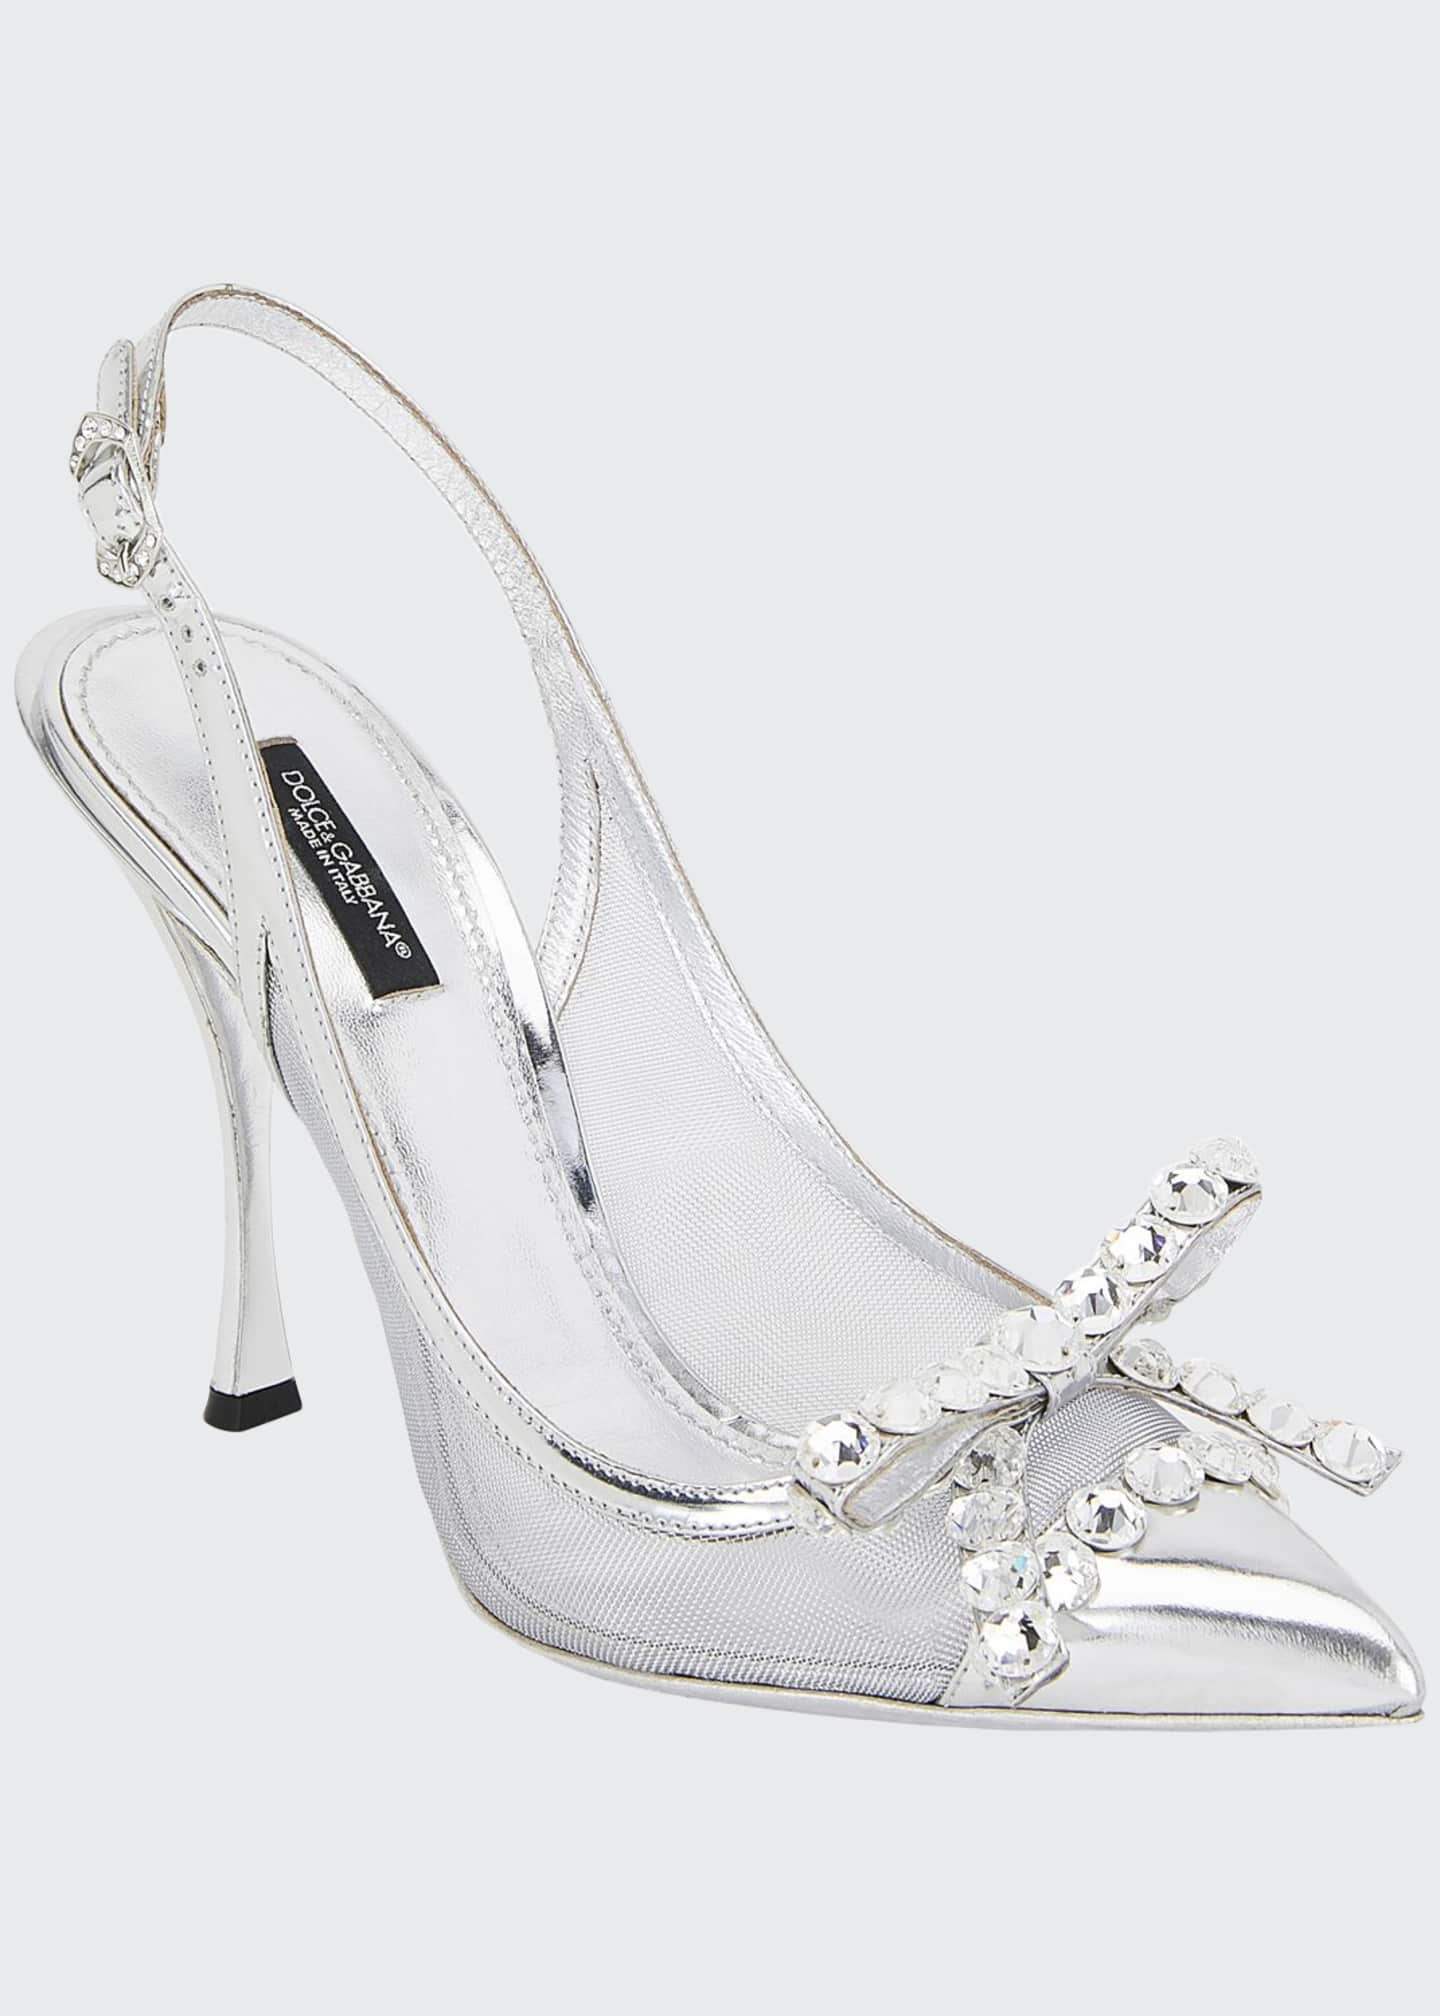 Dolce & Gabbana Slingback Crystal Metallic Pumps